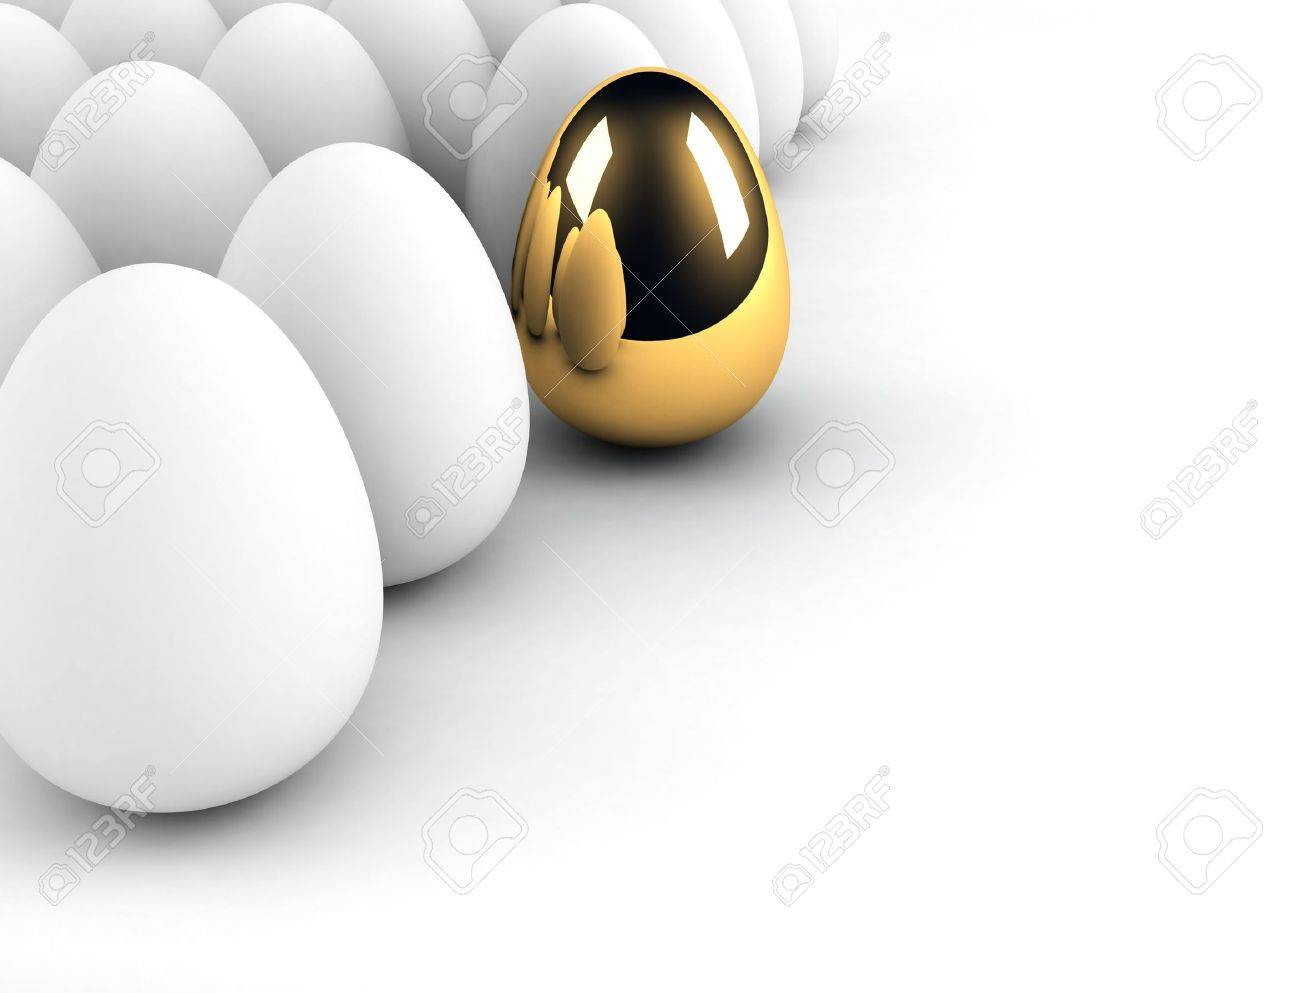 golden egg concept out of the crowd Stock Photo - 6563686